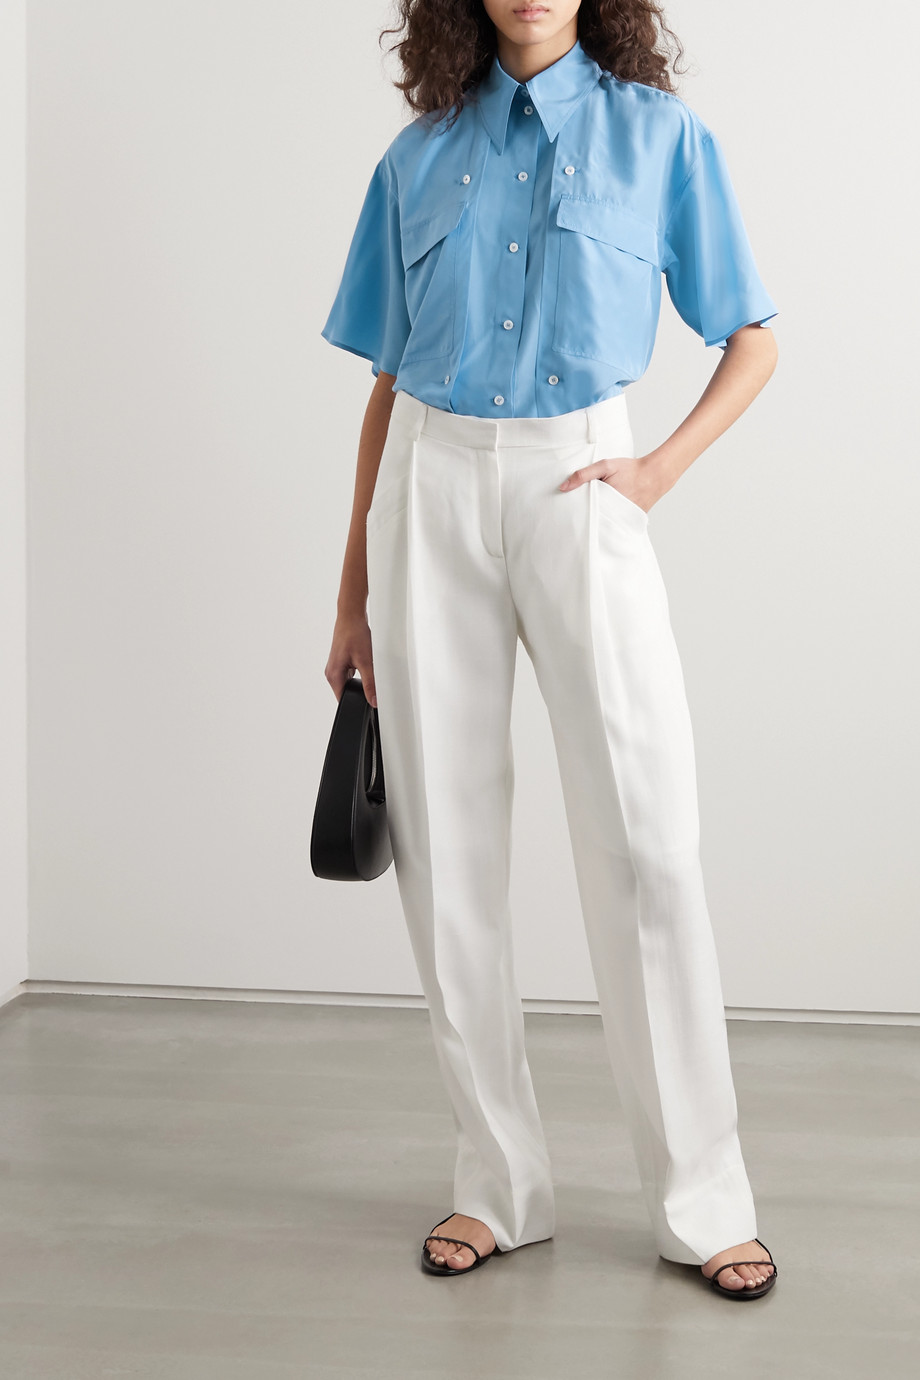 Stella McCartney Silk shirt